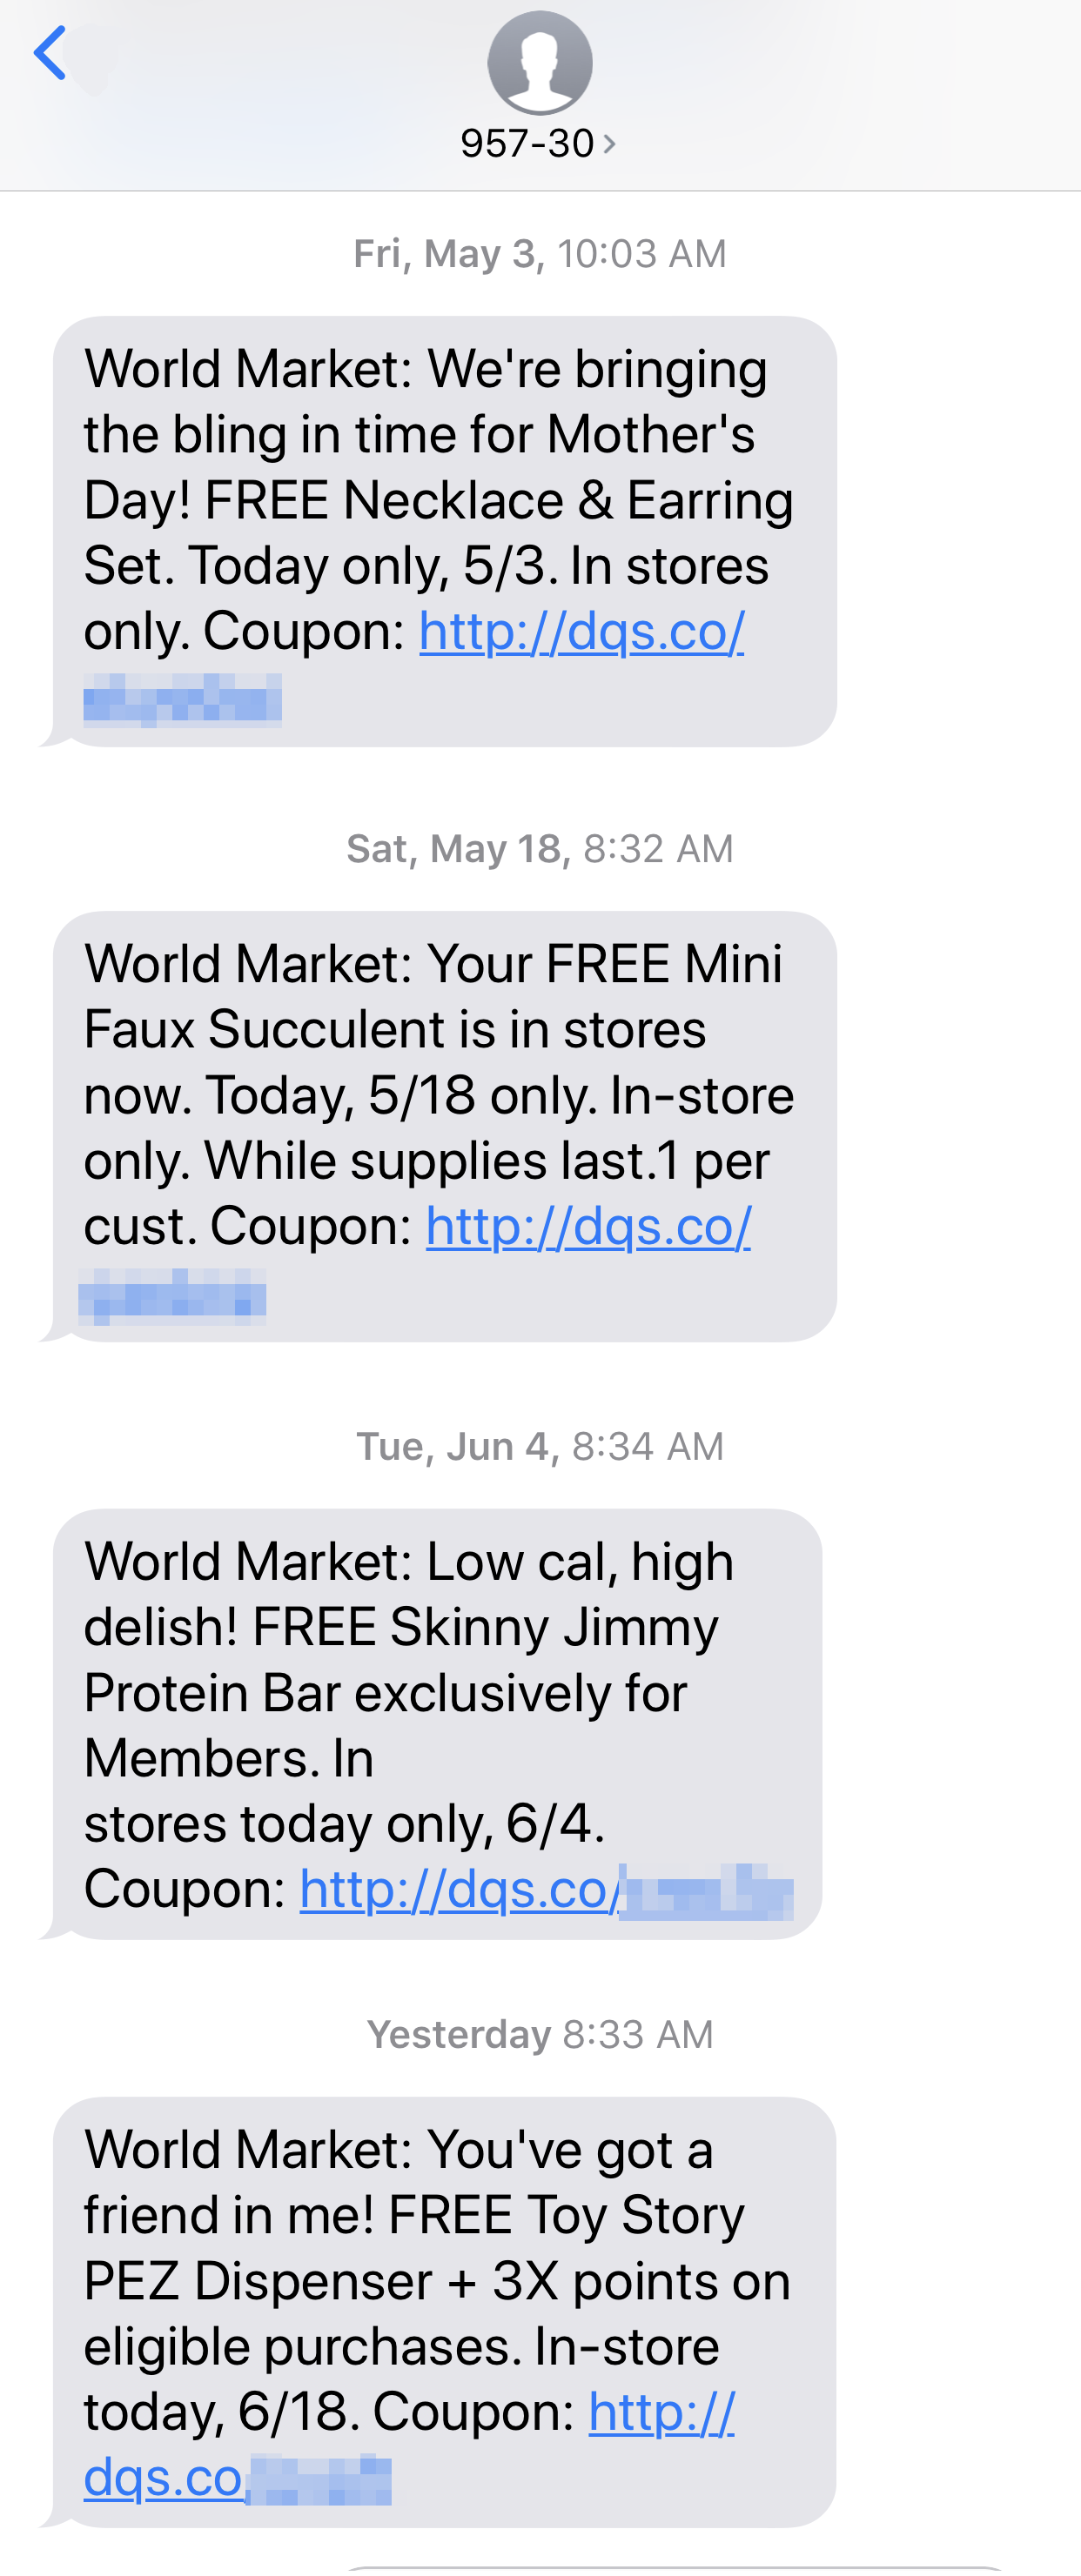 FREE Stuff from World Market Rewards